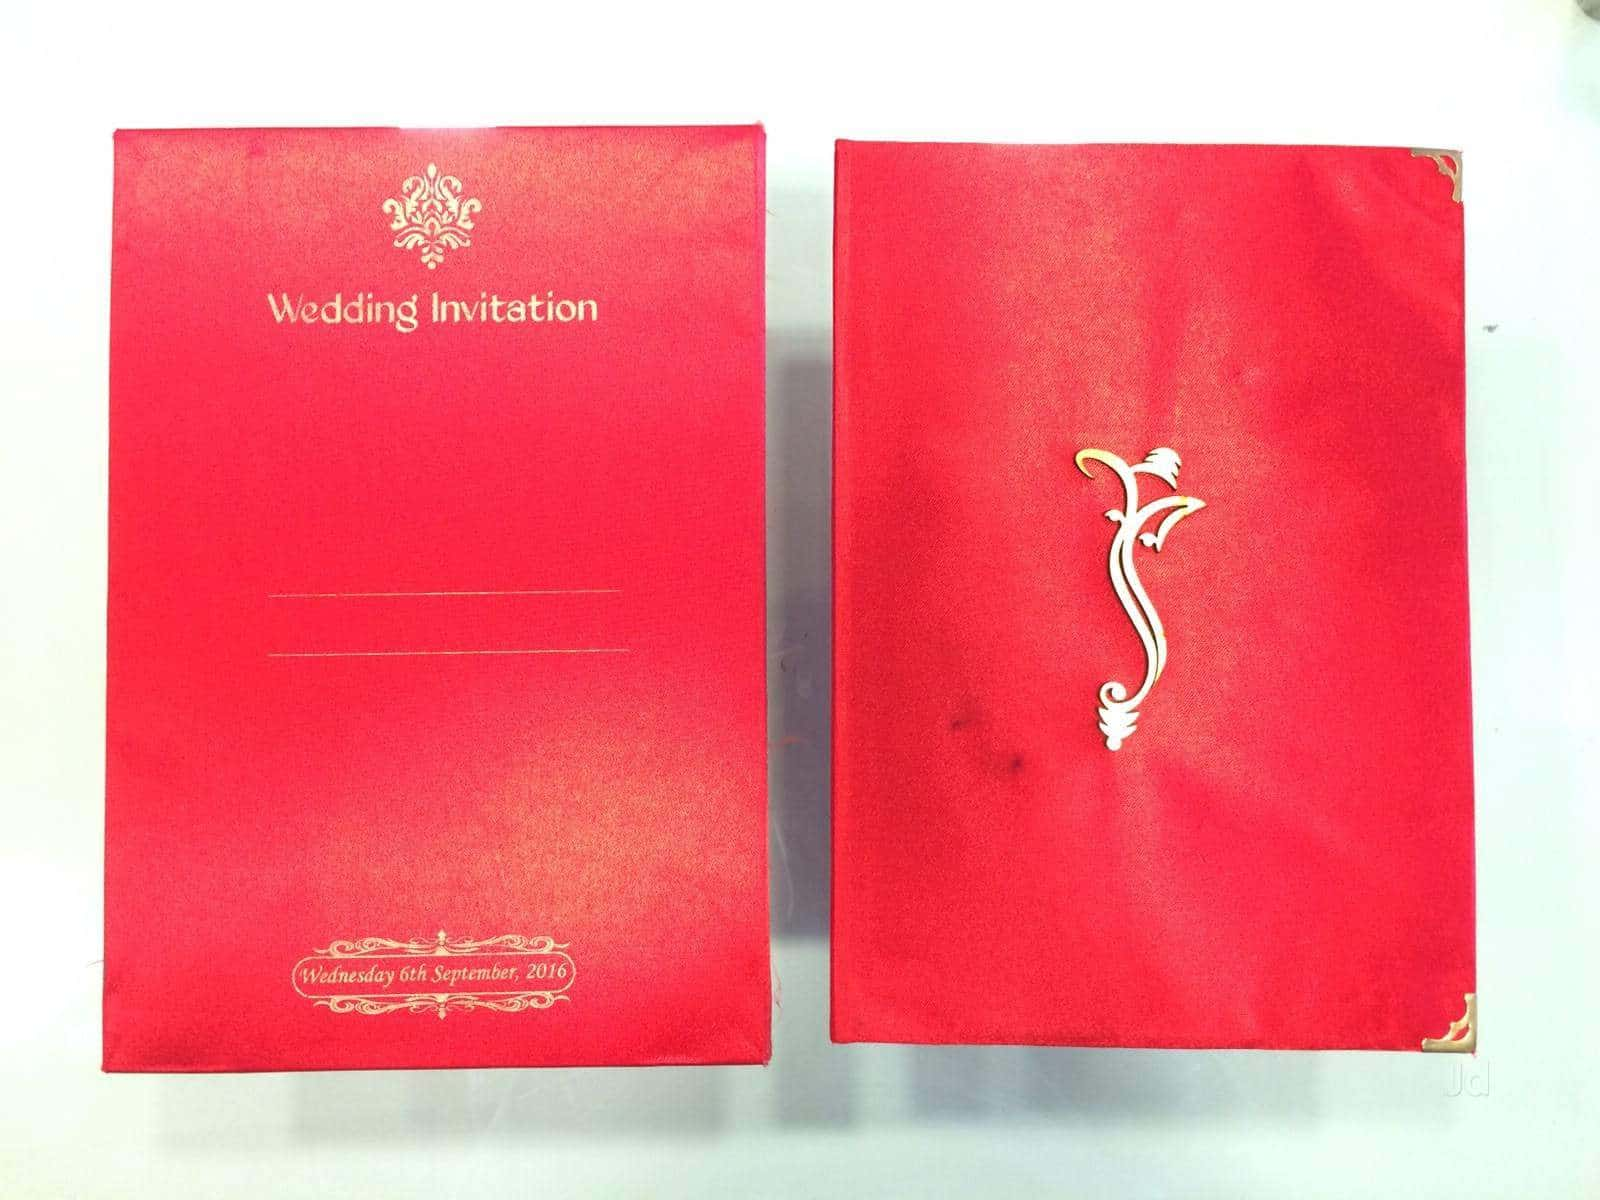 J J Wedding Cards, Dahisar - Wedding Card Dealers in Mumbai - Justdial